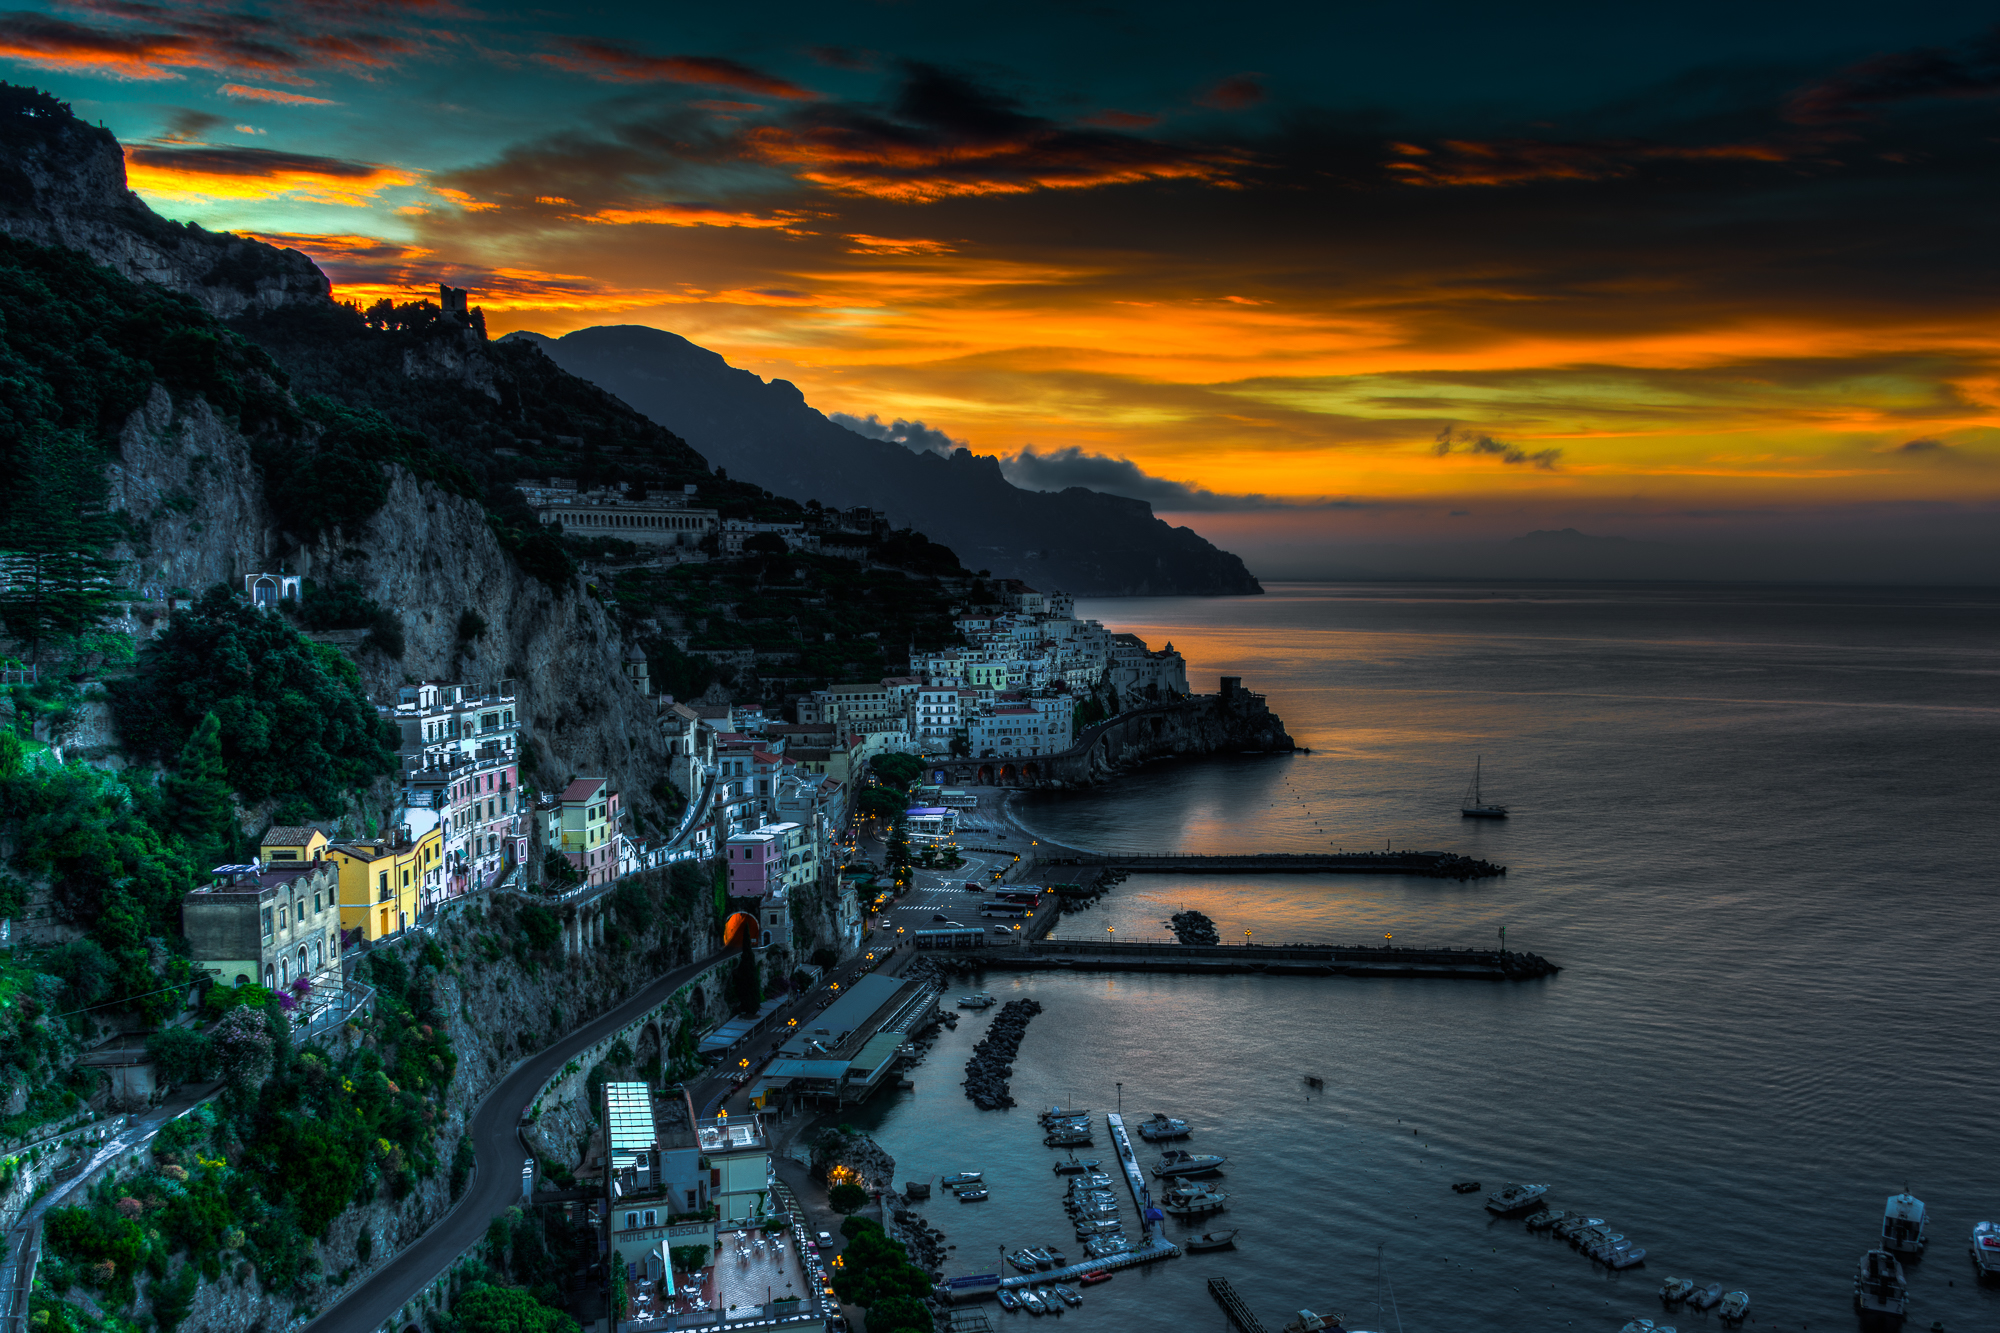 Sunrise comes to the Amalfi Coast